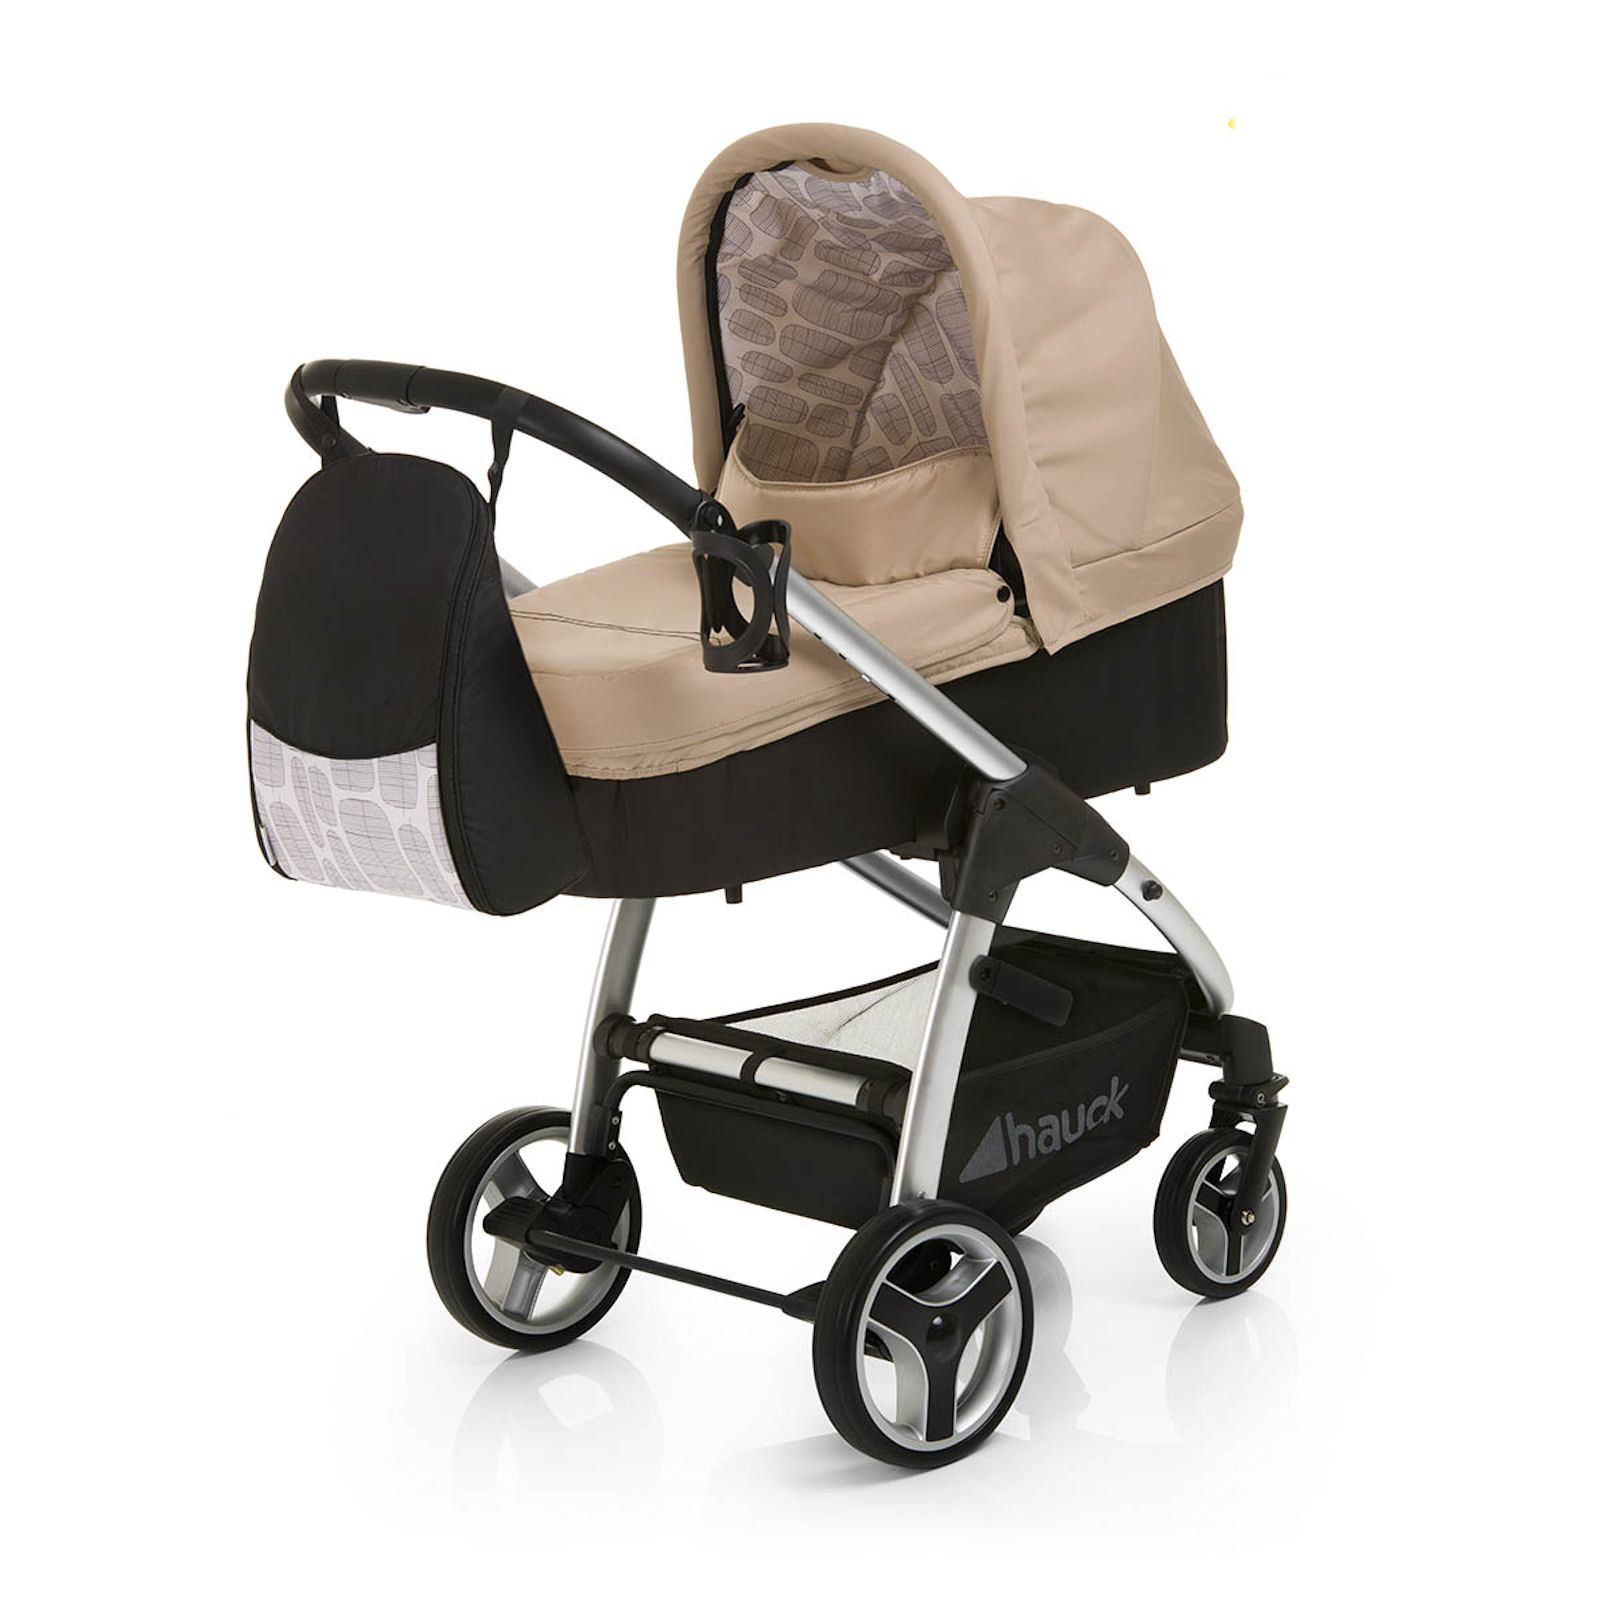 new hauck lacrosse rock all in one travel system pushchair. Black Bedroom Furniture Sets. Home Design Ideas